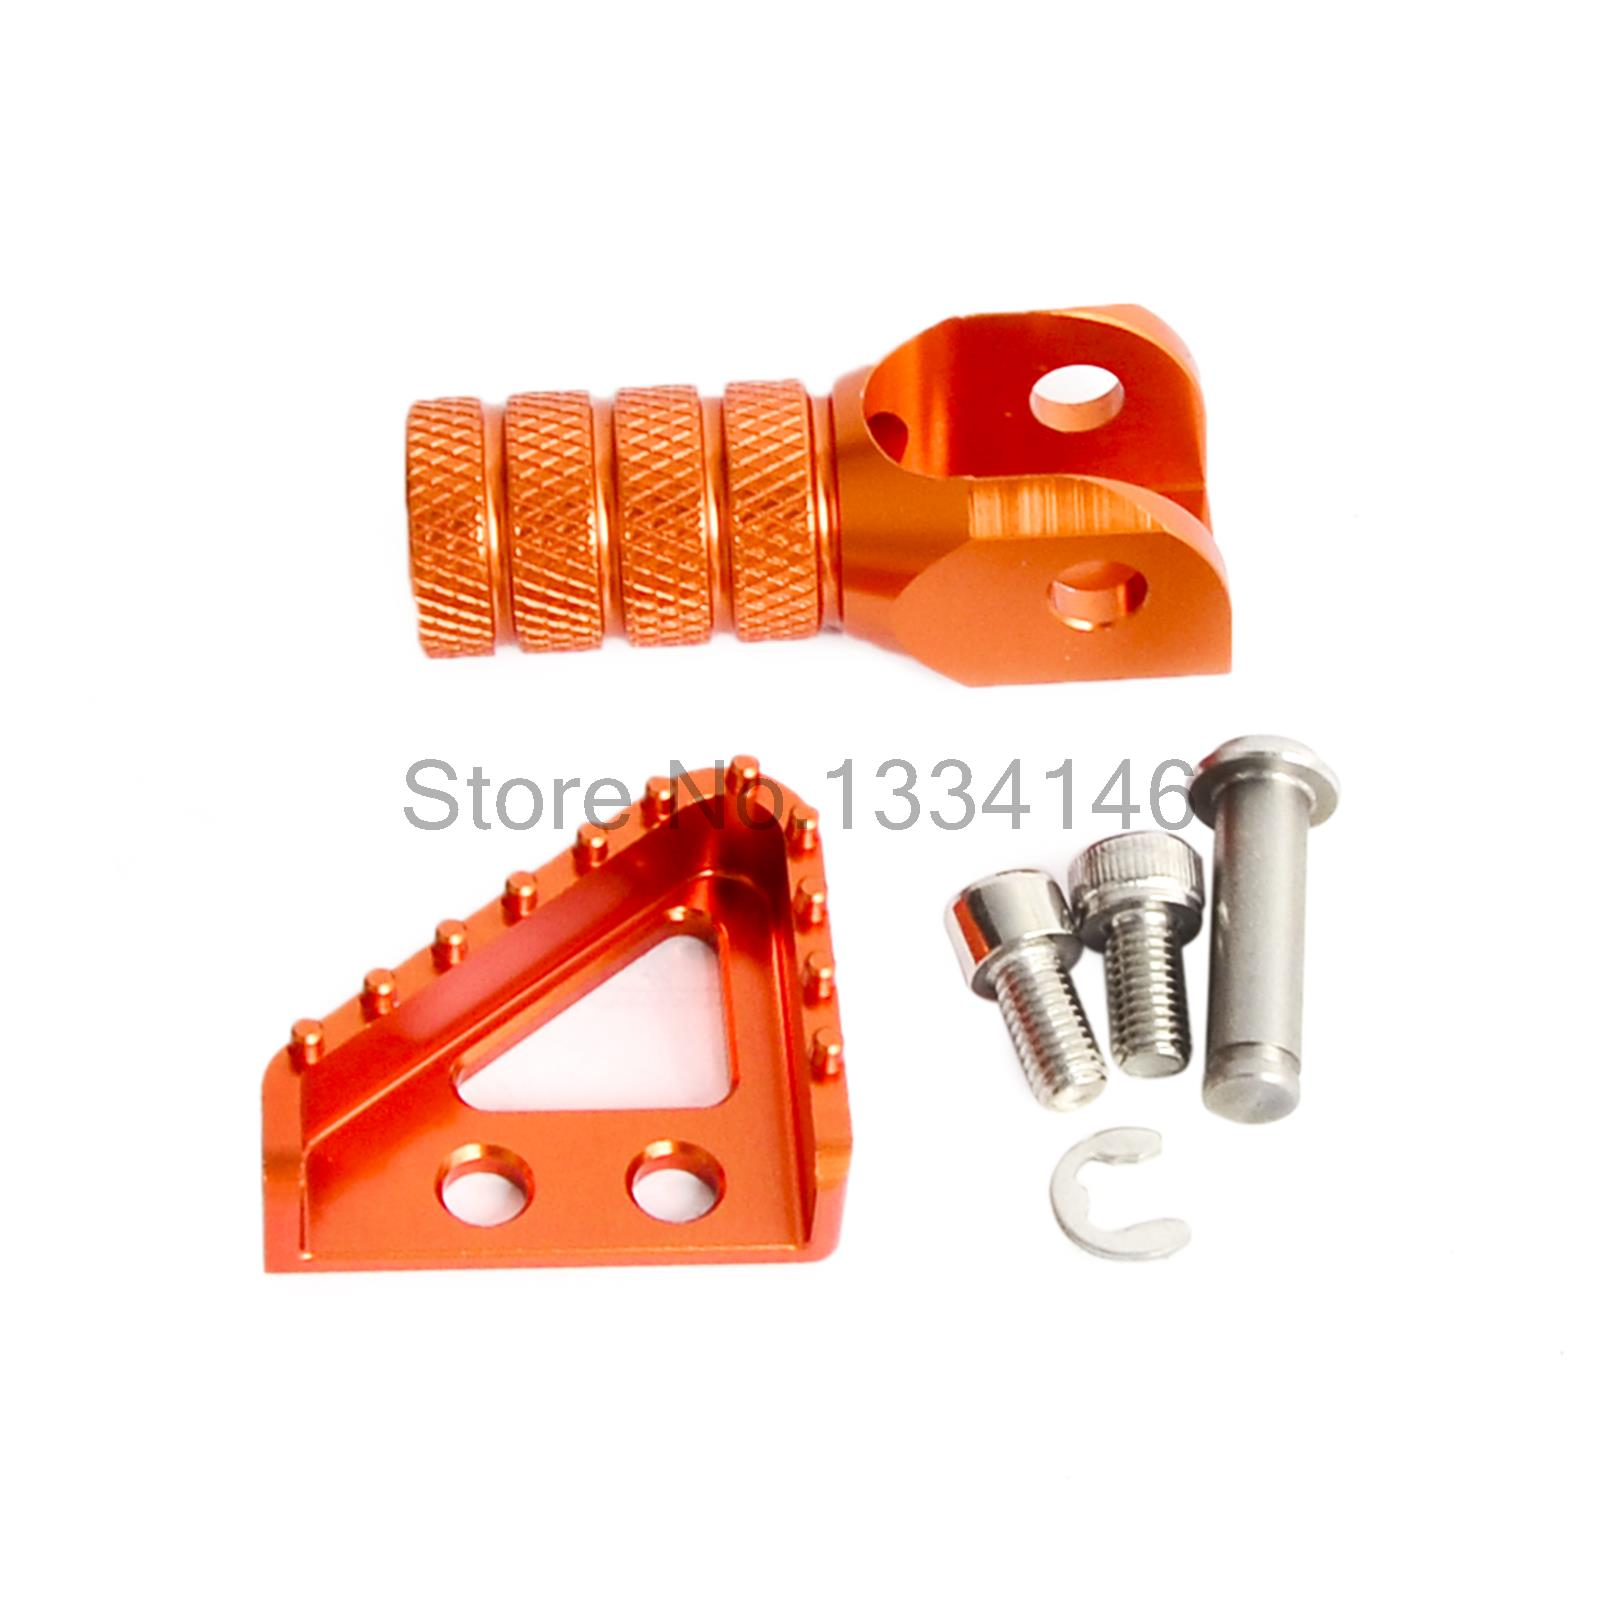 Billet Rear Brake Pedal Step Tips And Gear Shifter Lever Tip Replacement For KTM SX SX-F EXC EXC-F XCW XCF SMR SMC billet rear hub carriers for losi 5ive t